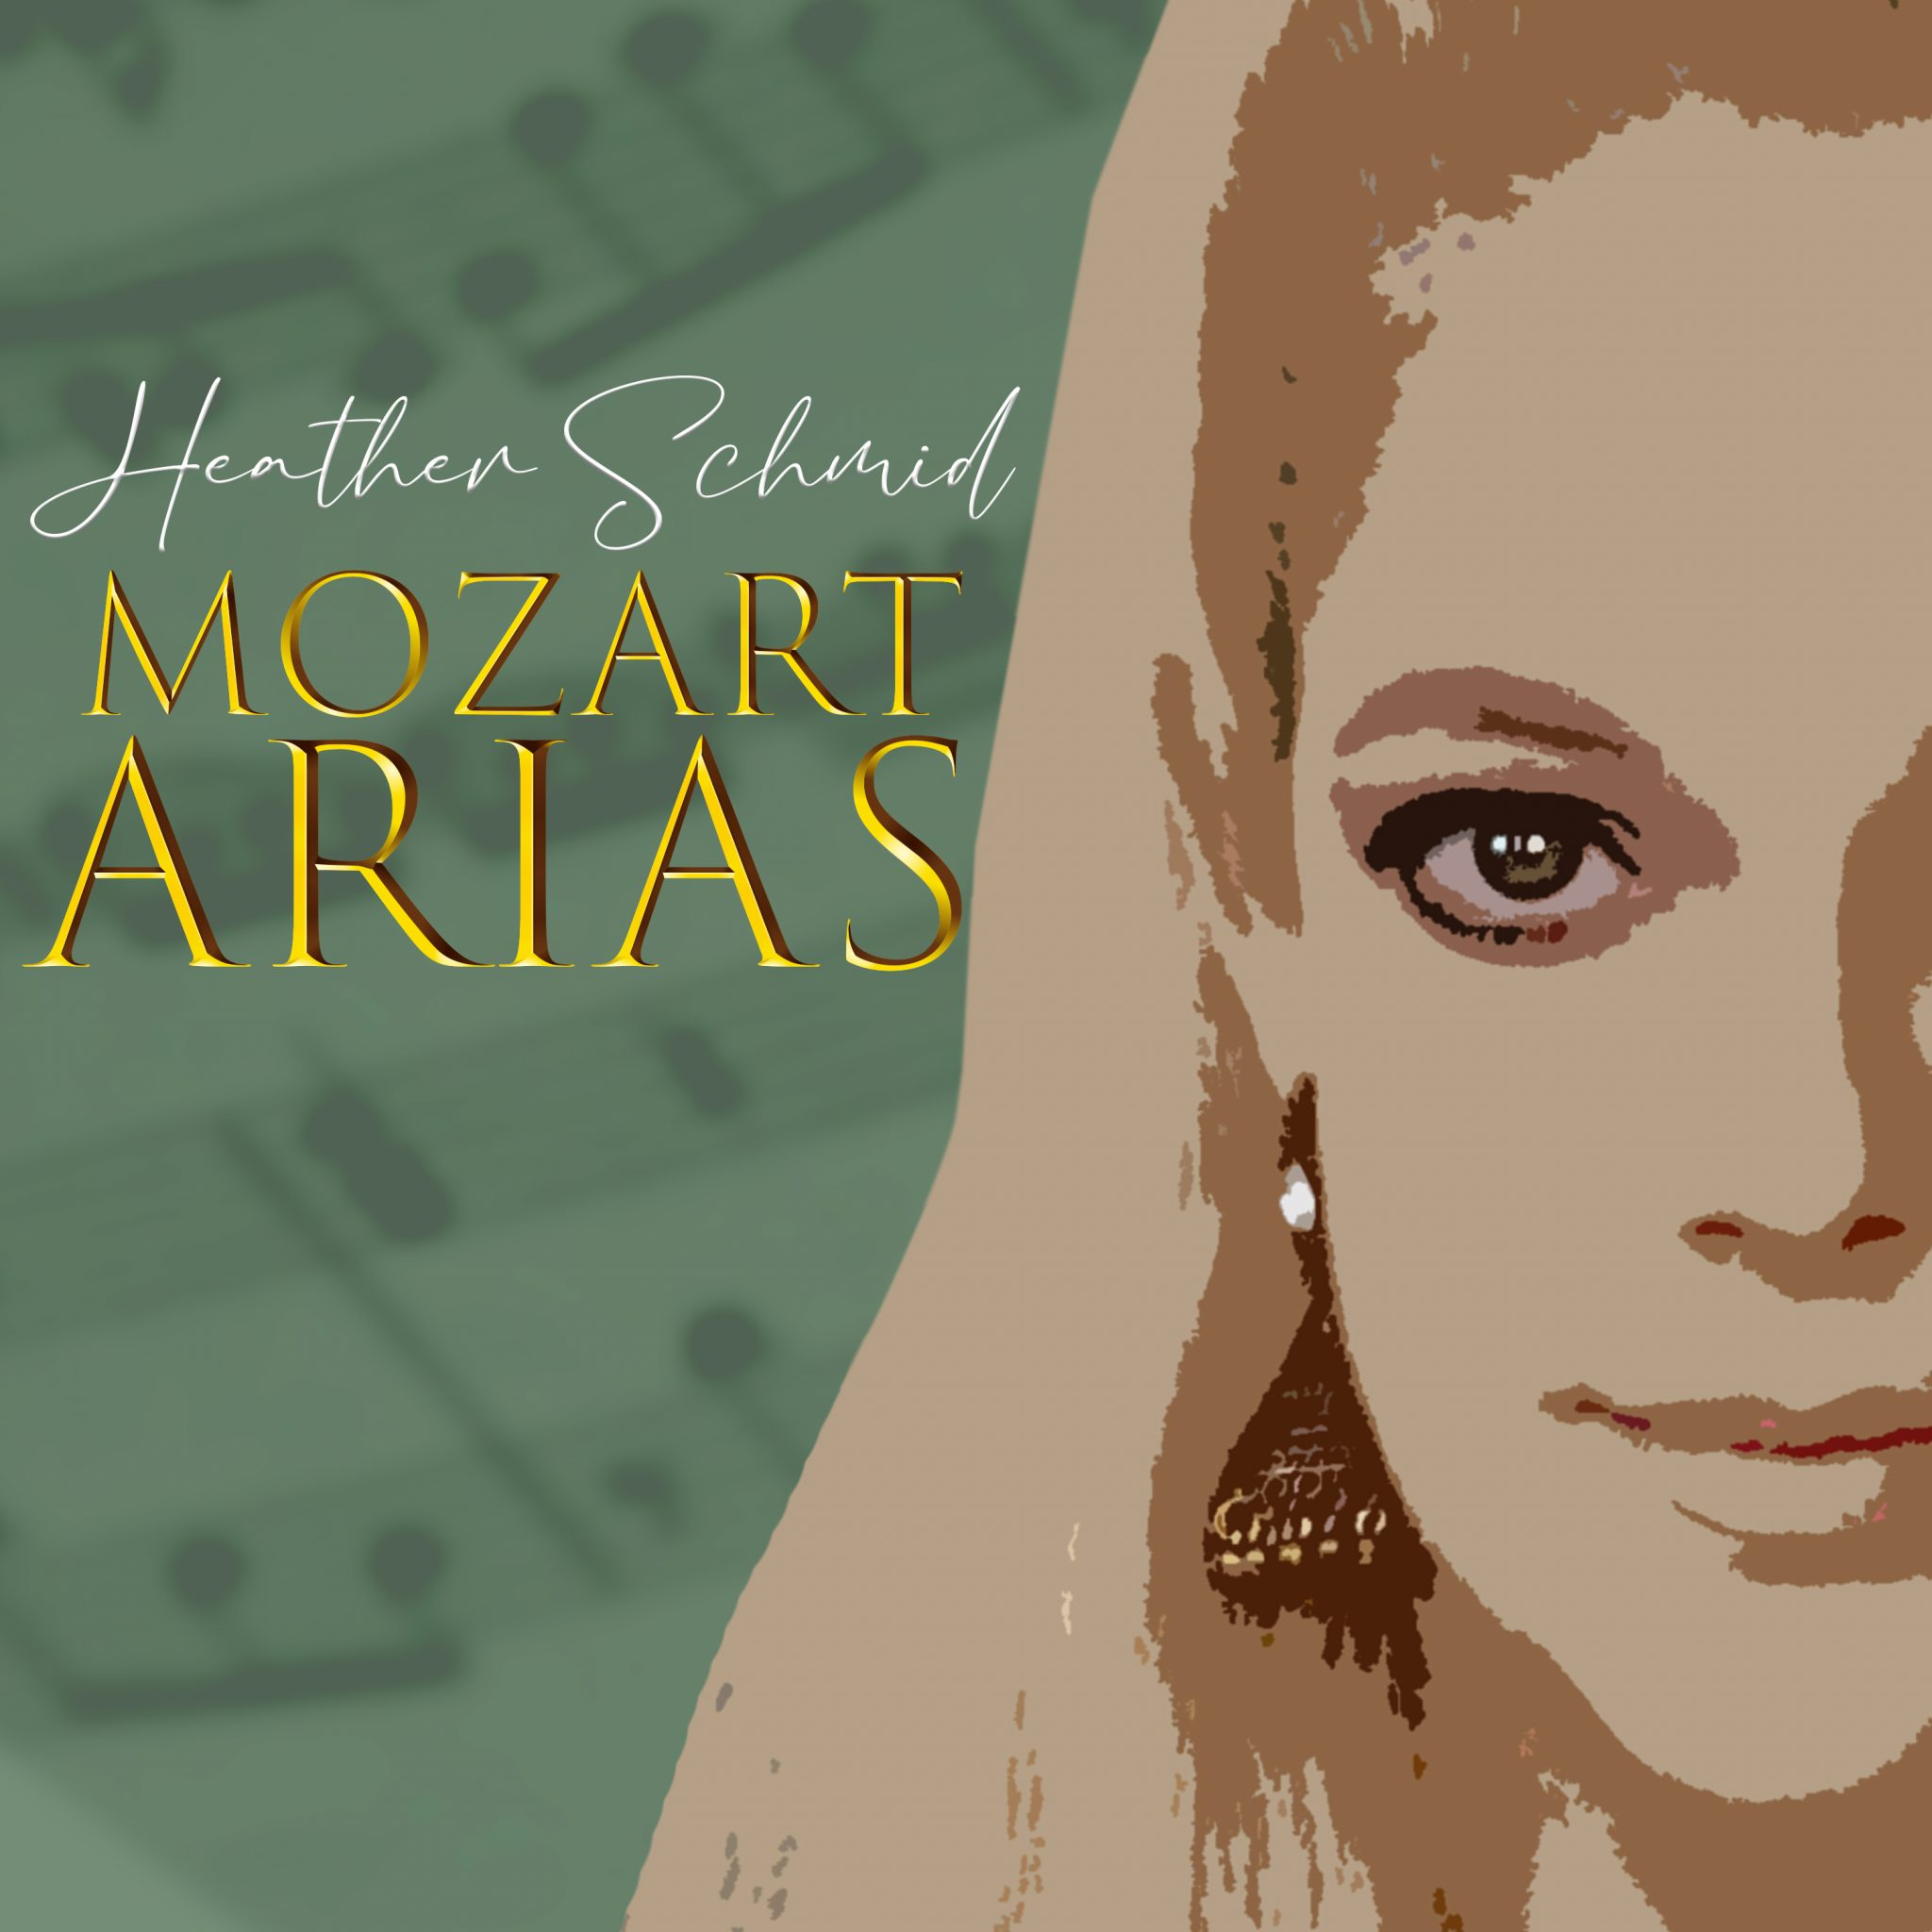 Mozart Calms with Heather Schmid